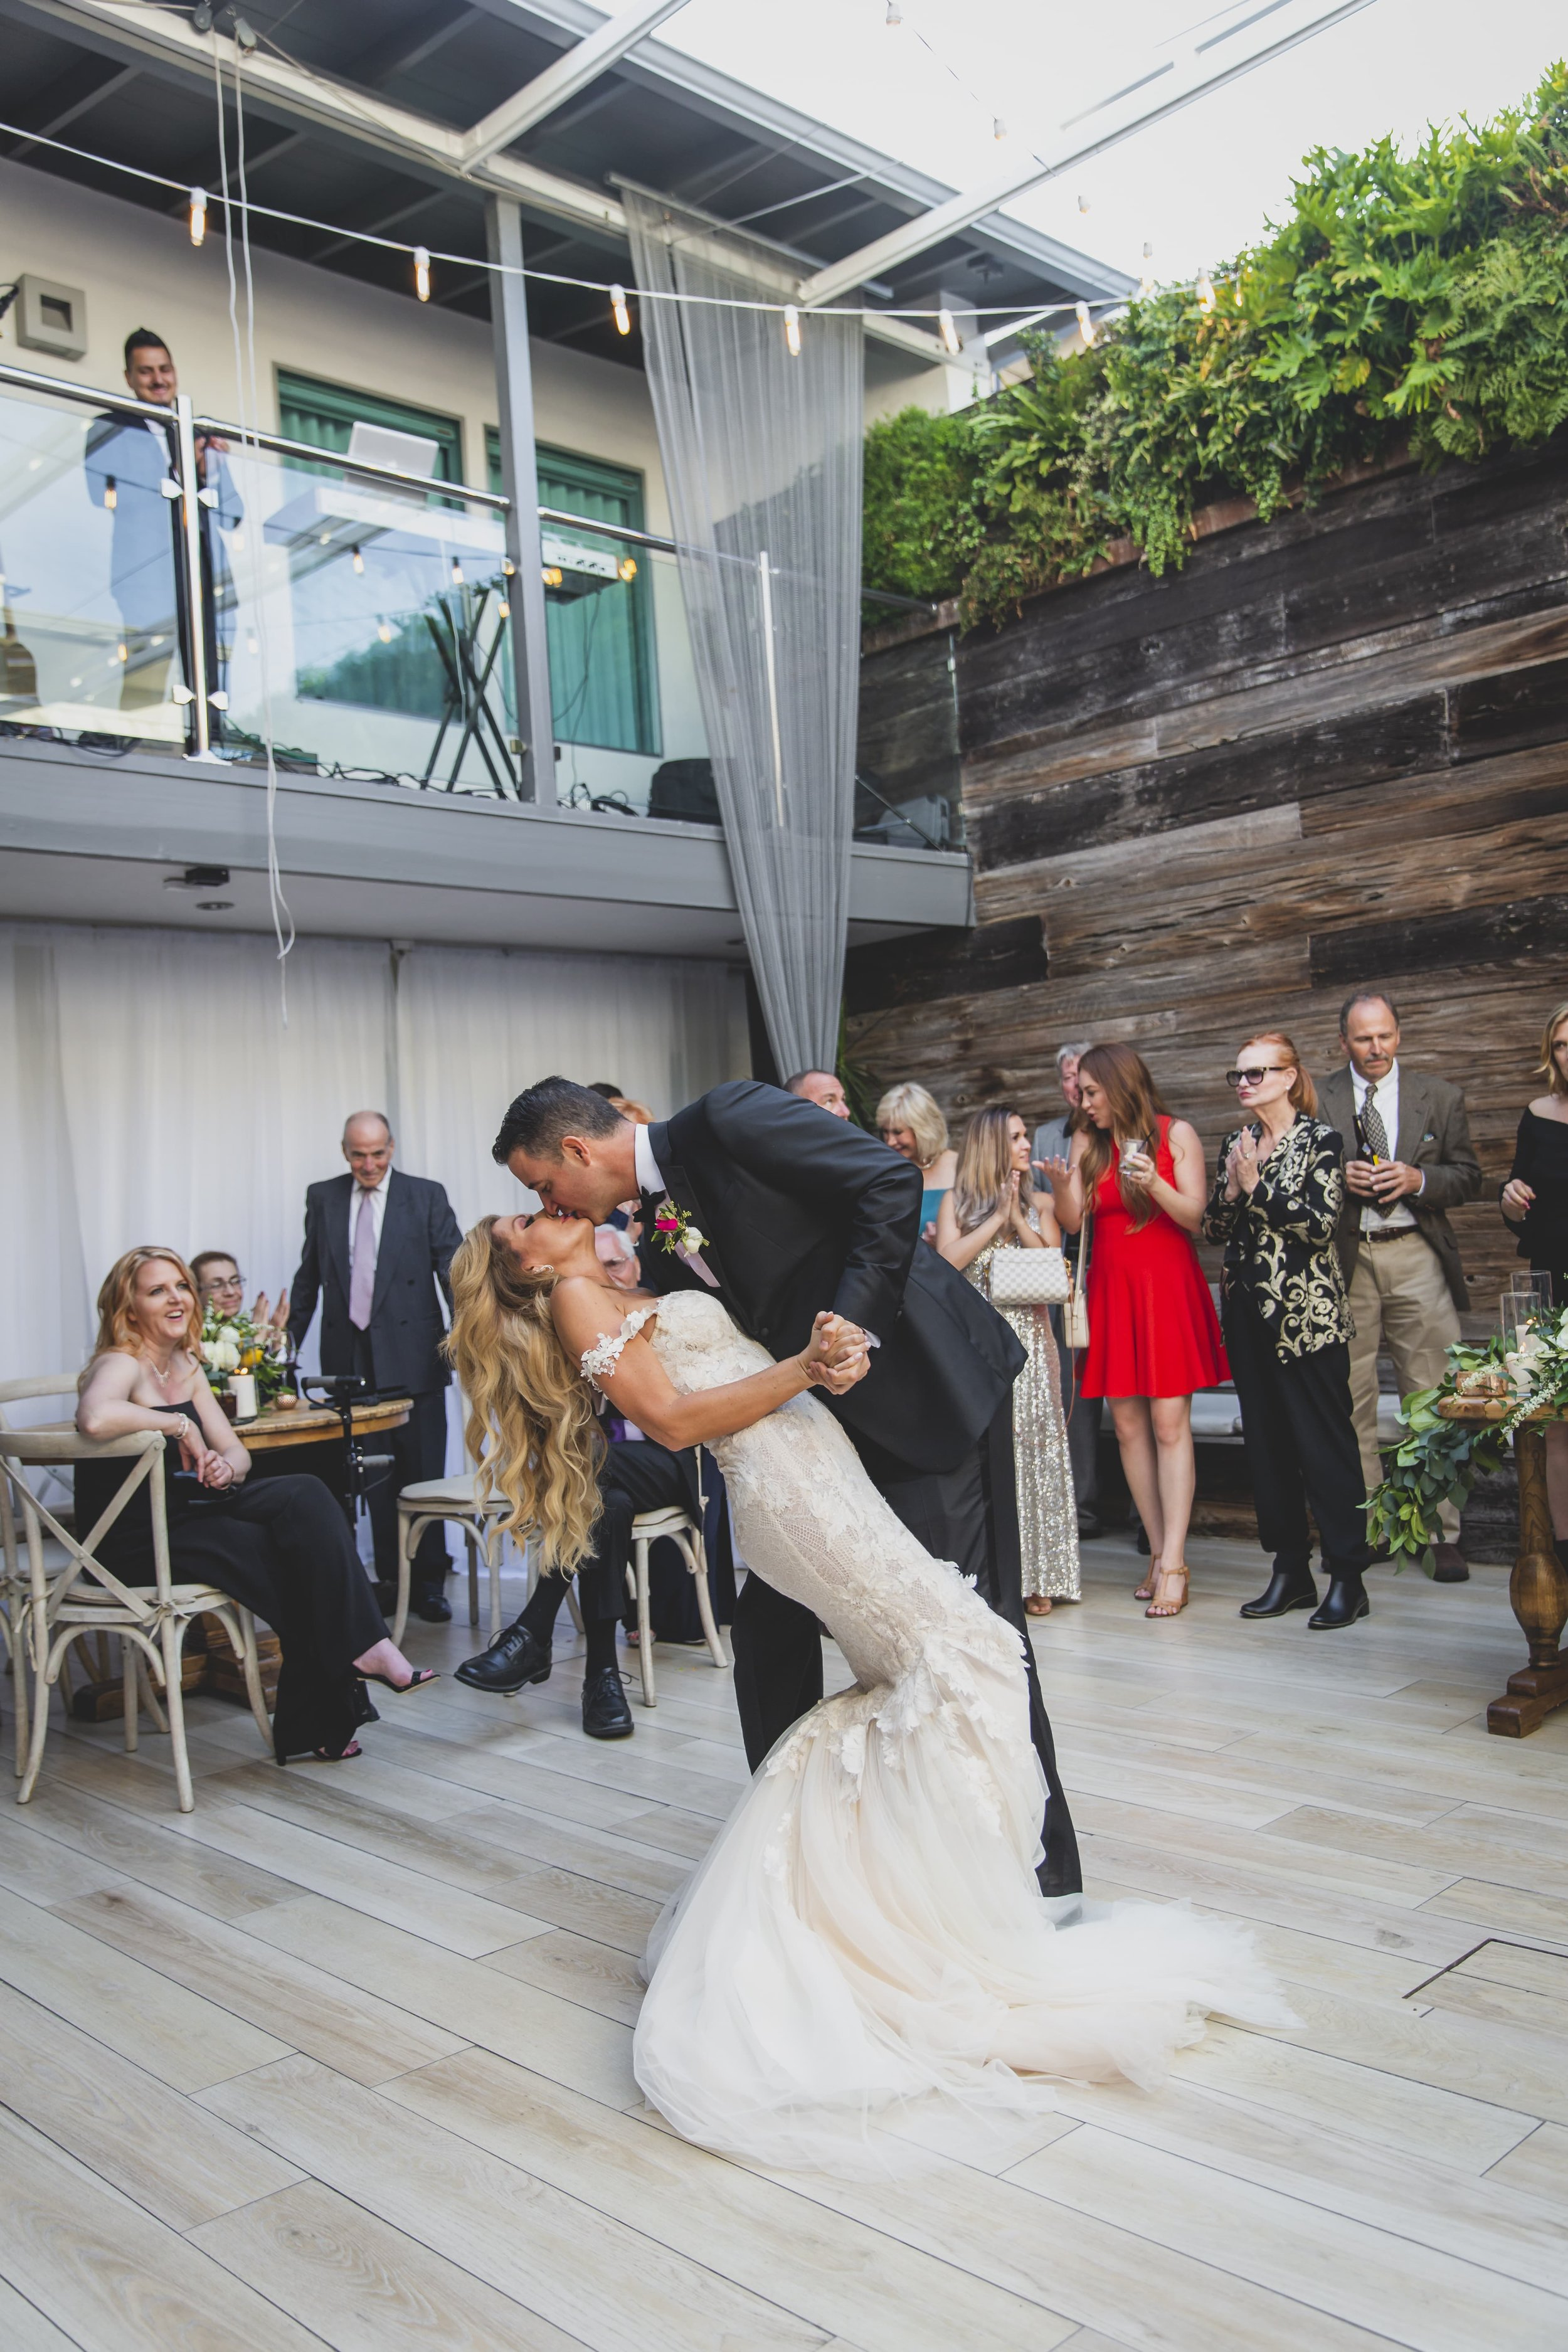 Wedding Photography Packages - Heritage Park, Dana Point, CA - Bride and groom dancing at the wedding reception.